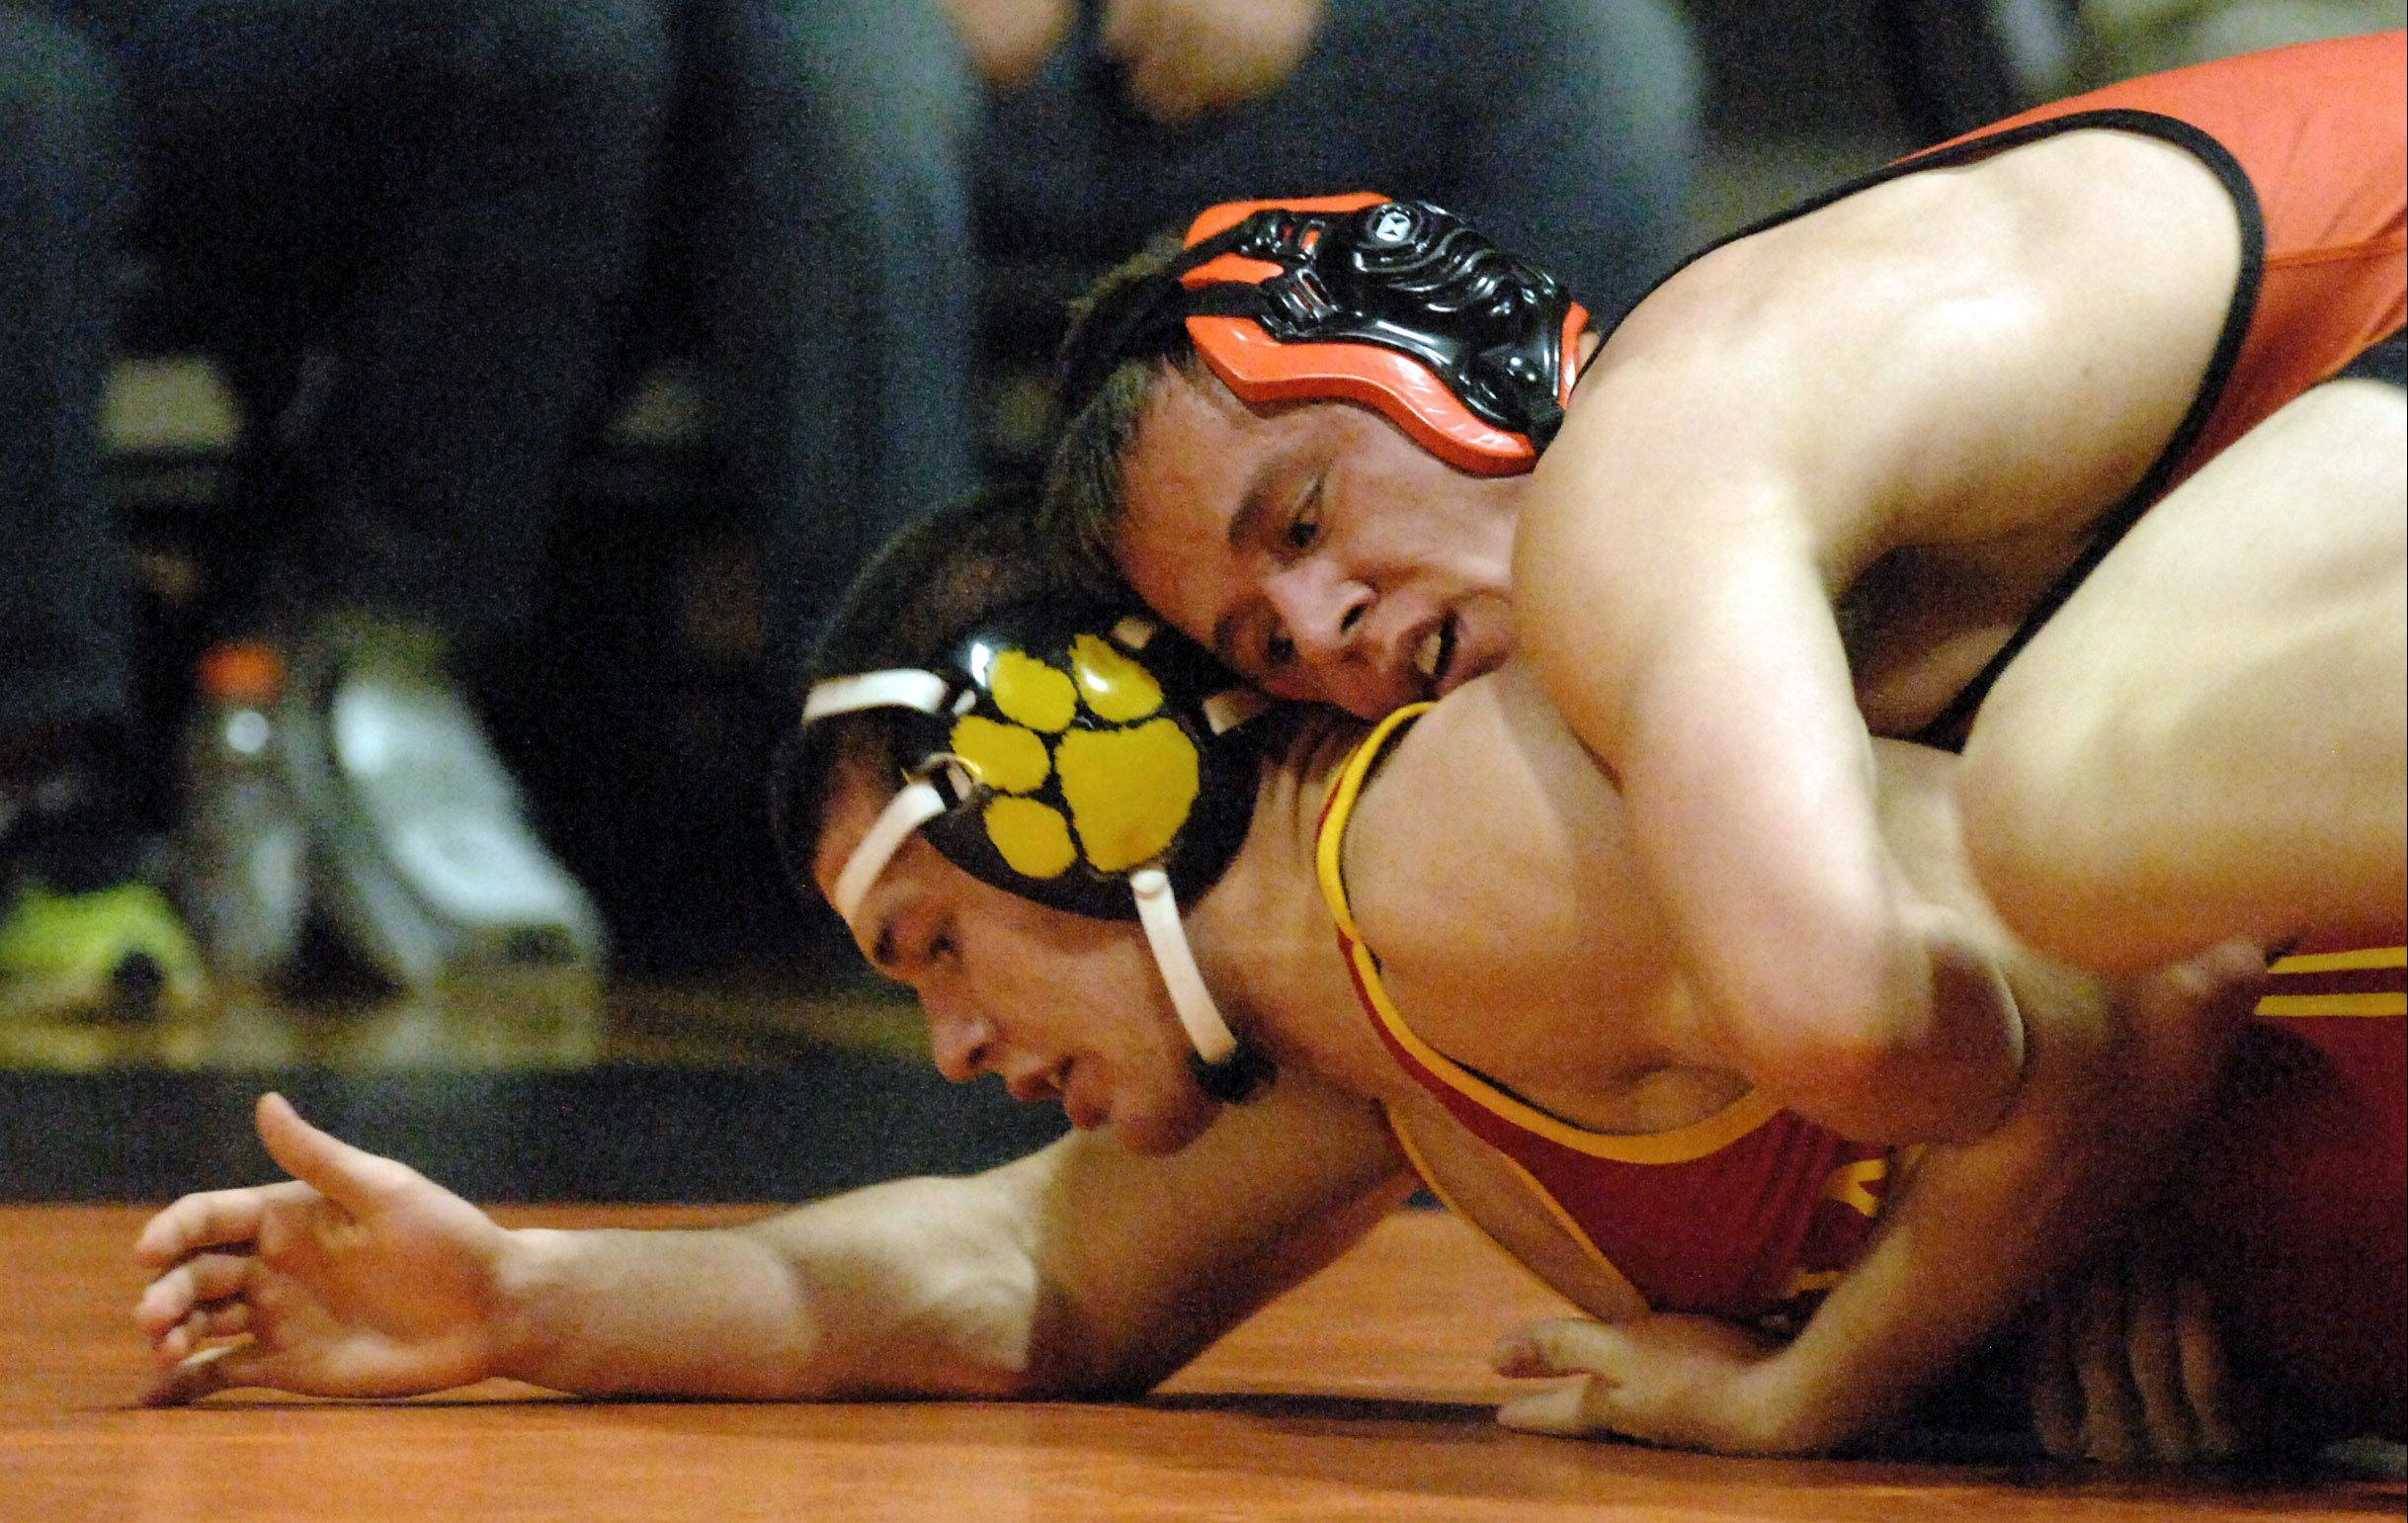 St. Charles East's Jordan Meadows defeated Batavia's Noah Frazier at 182 pounds Thursday at St. Charles East.